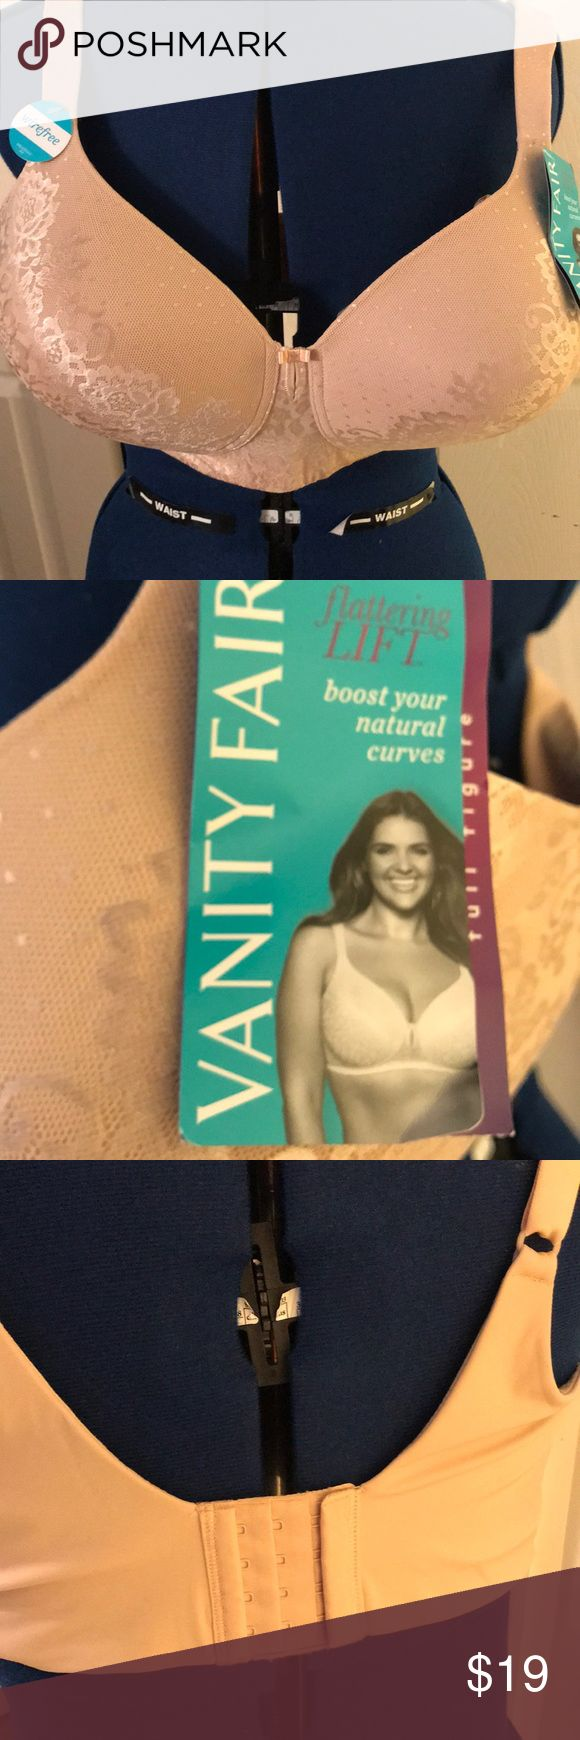 Vanity Fair 40dd beige bra vanity fair 71262 49DD Bra new with tags lace 85 nylon 15 spandex back78 percent nylon 23 percent spandex exclusive of decoration flattering lift boost your natural curves New  with tags. Vanity Fair Intimates & Sleepwear Bras